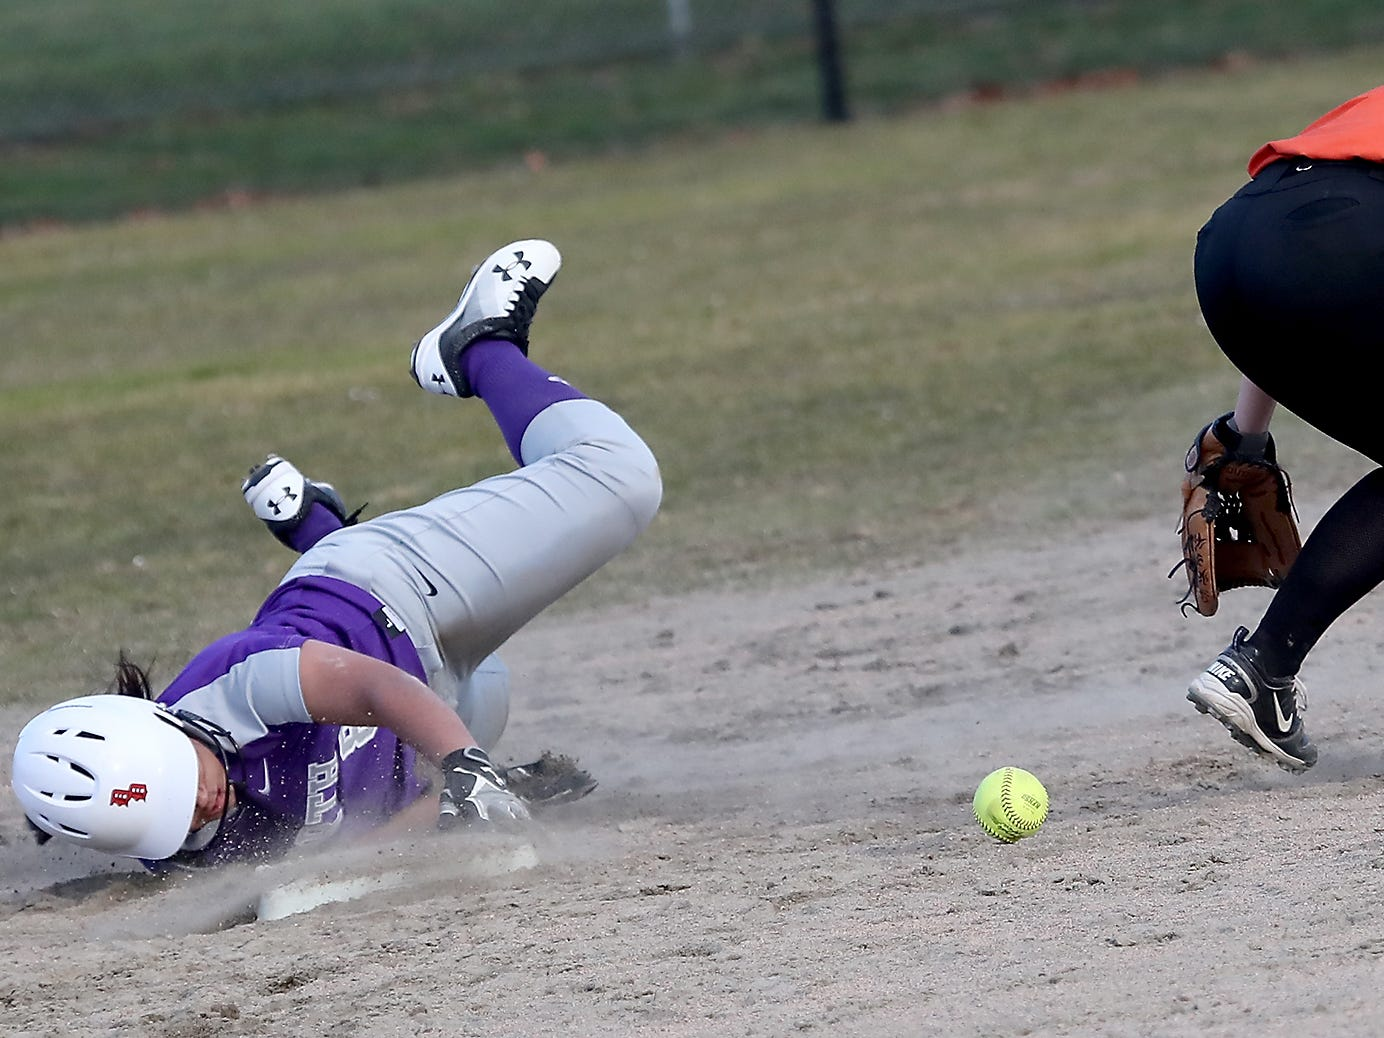 North Kitsap's Alicia Goetz slides into second as Central Kitsap's Brooke Mimaki tries to find the ball in Poulsbo on Wednesday, March 13, 2019.